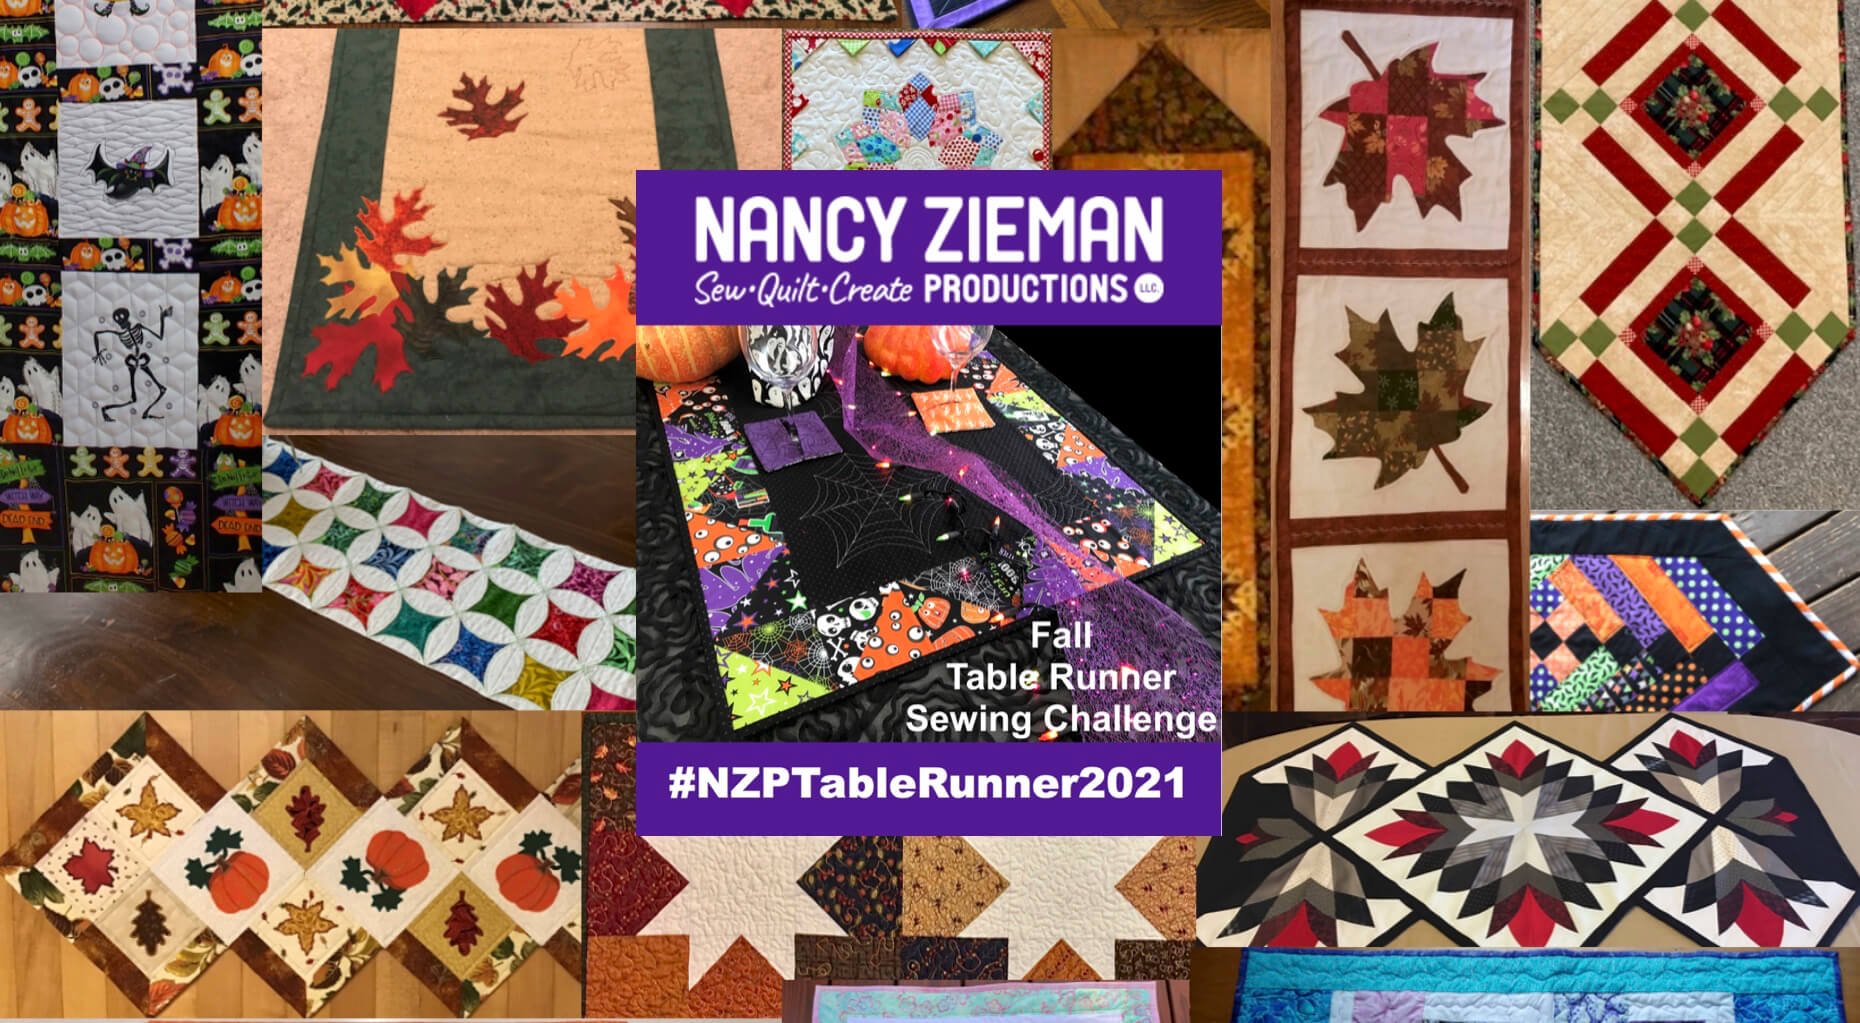 2021 NZP Fall Table Runner Sewing Challenge Winners Announced